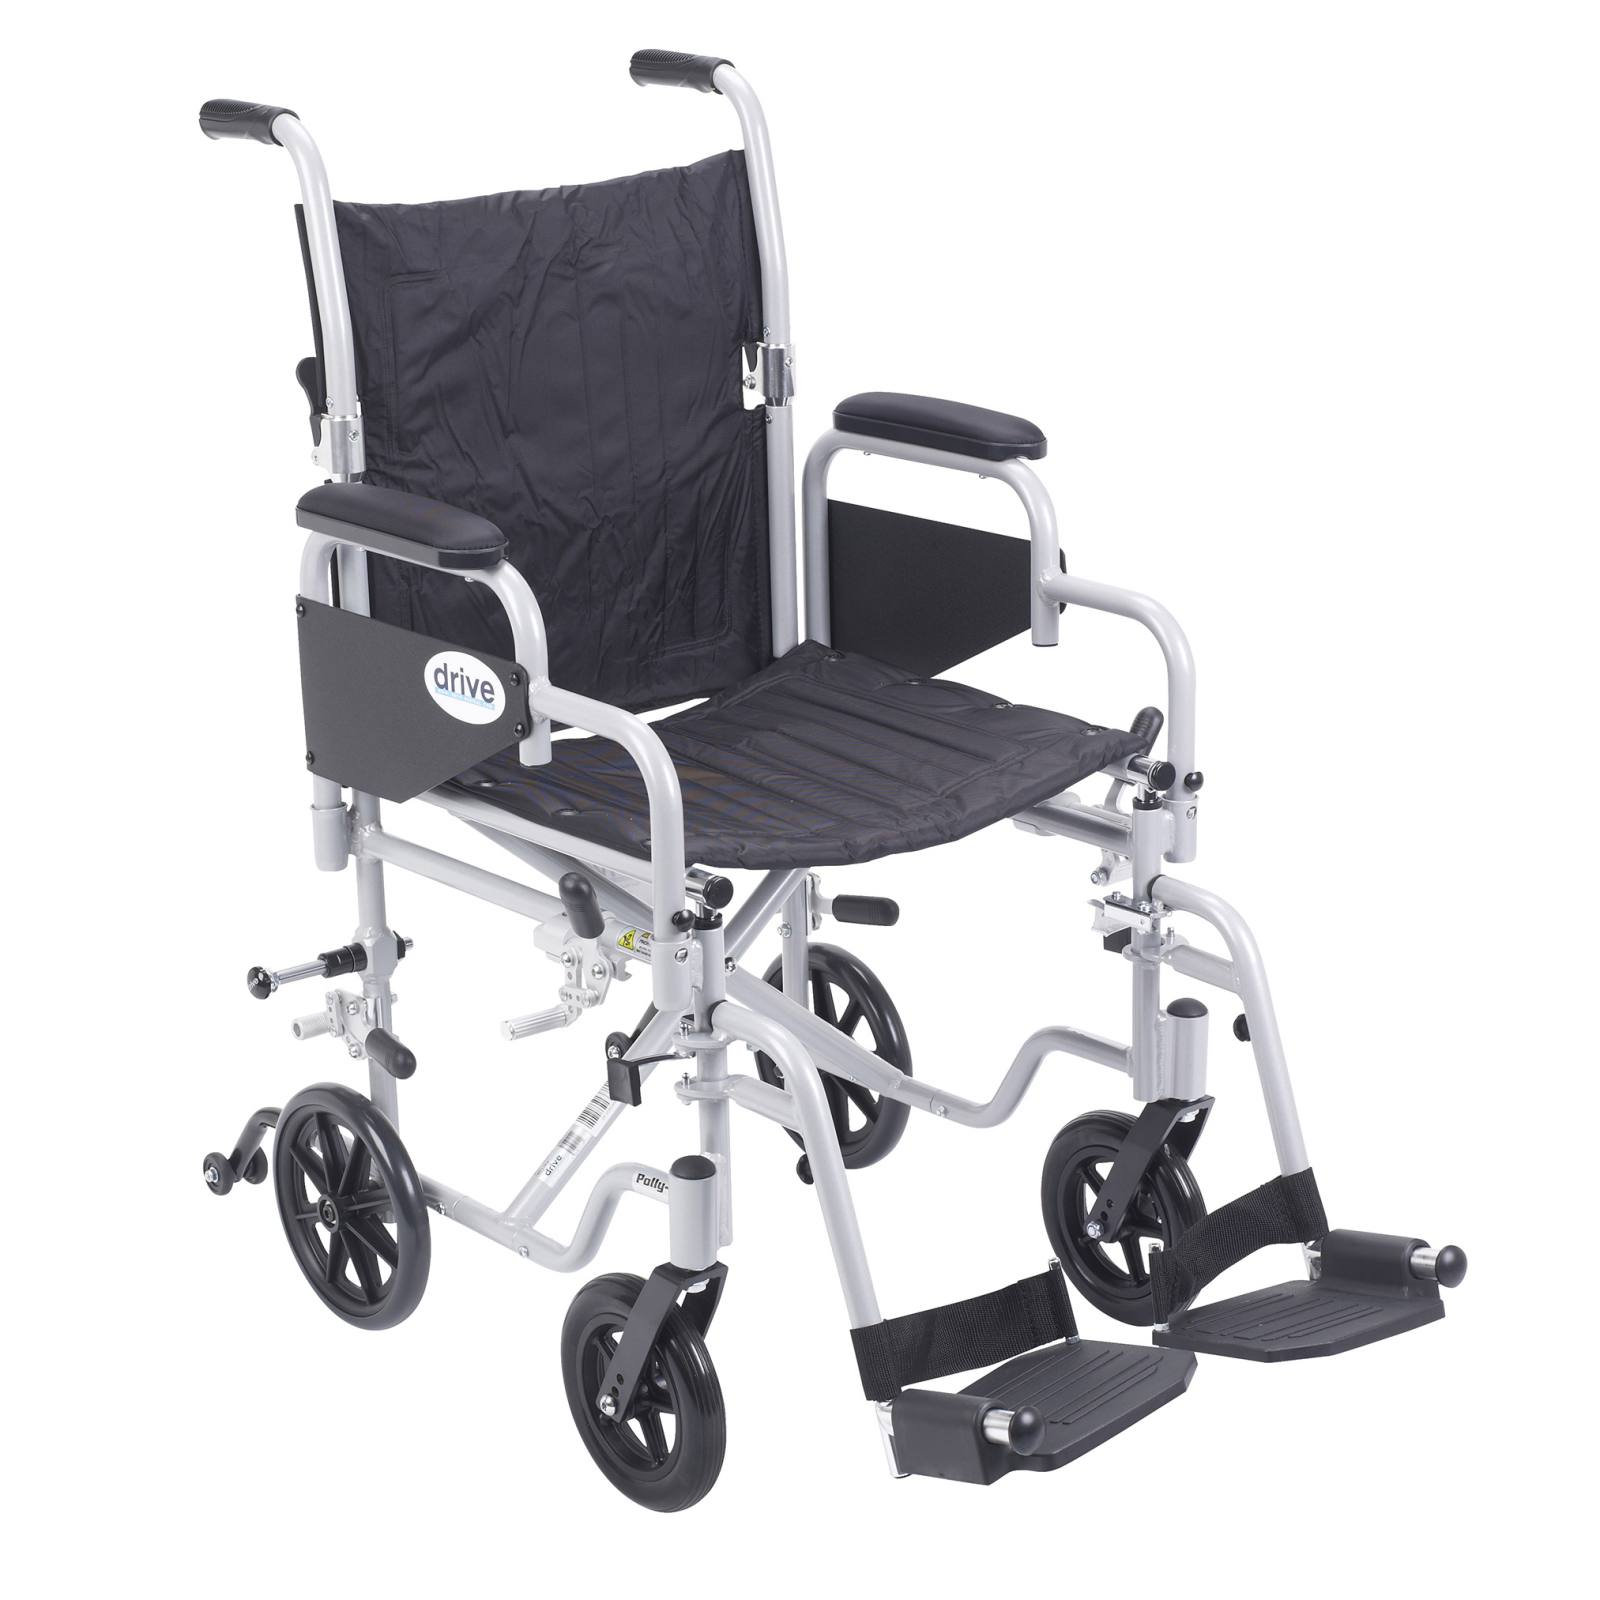 Lift Chairs, Scooters, Walking Aids - Home Health Products